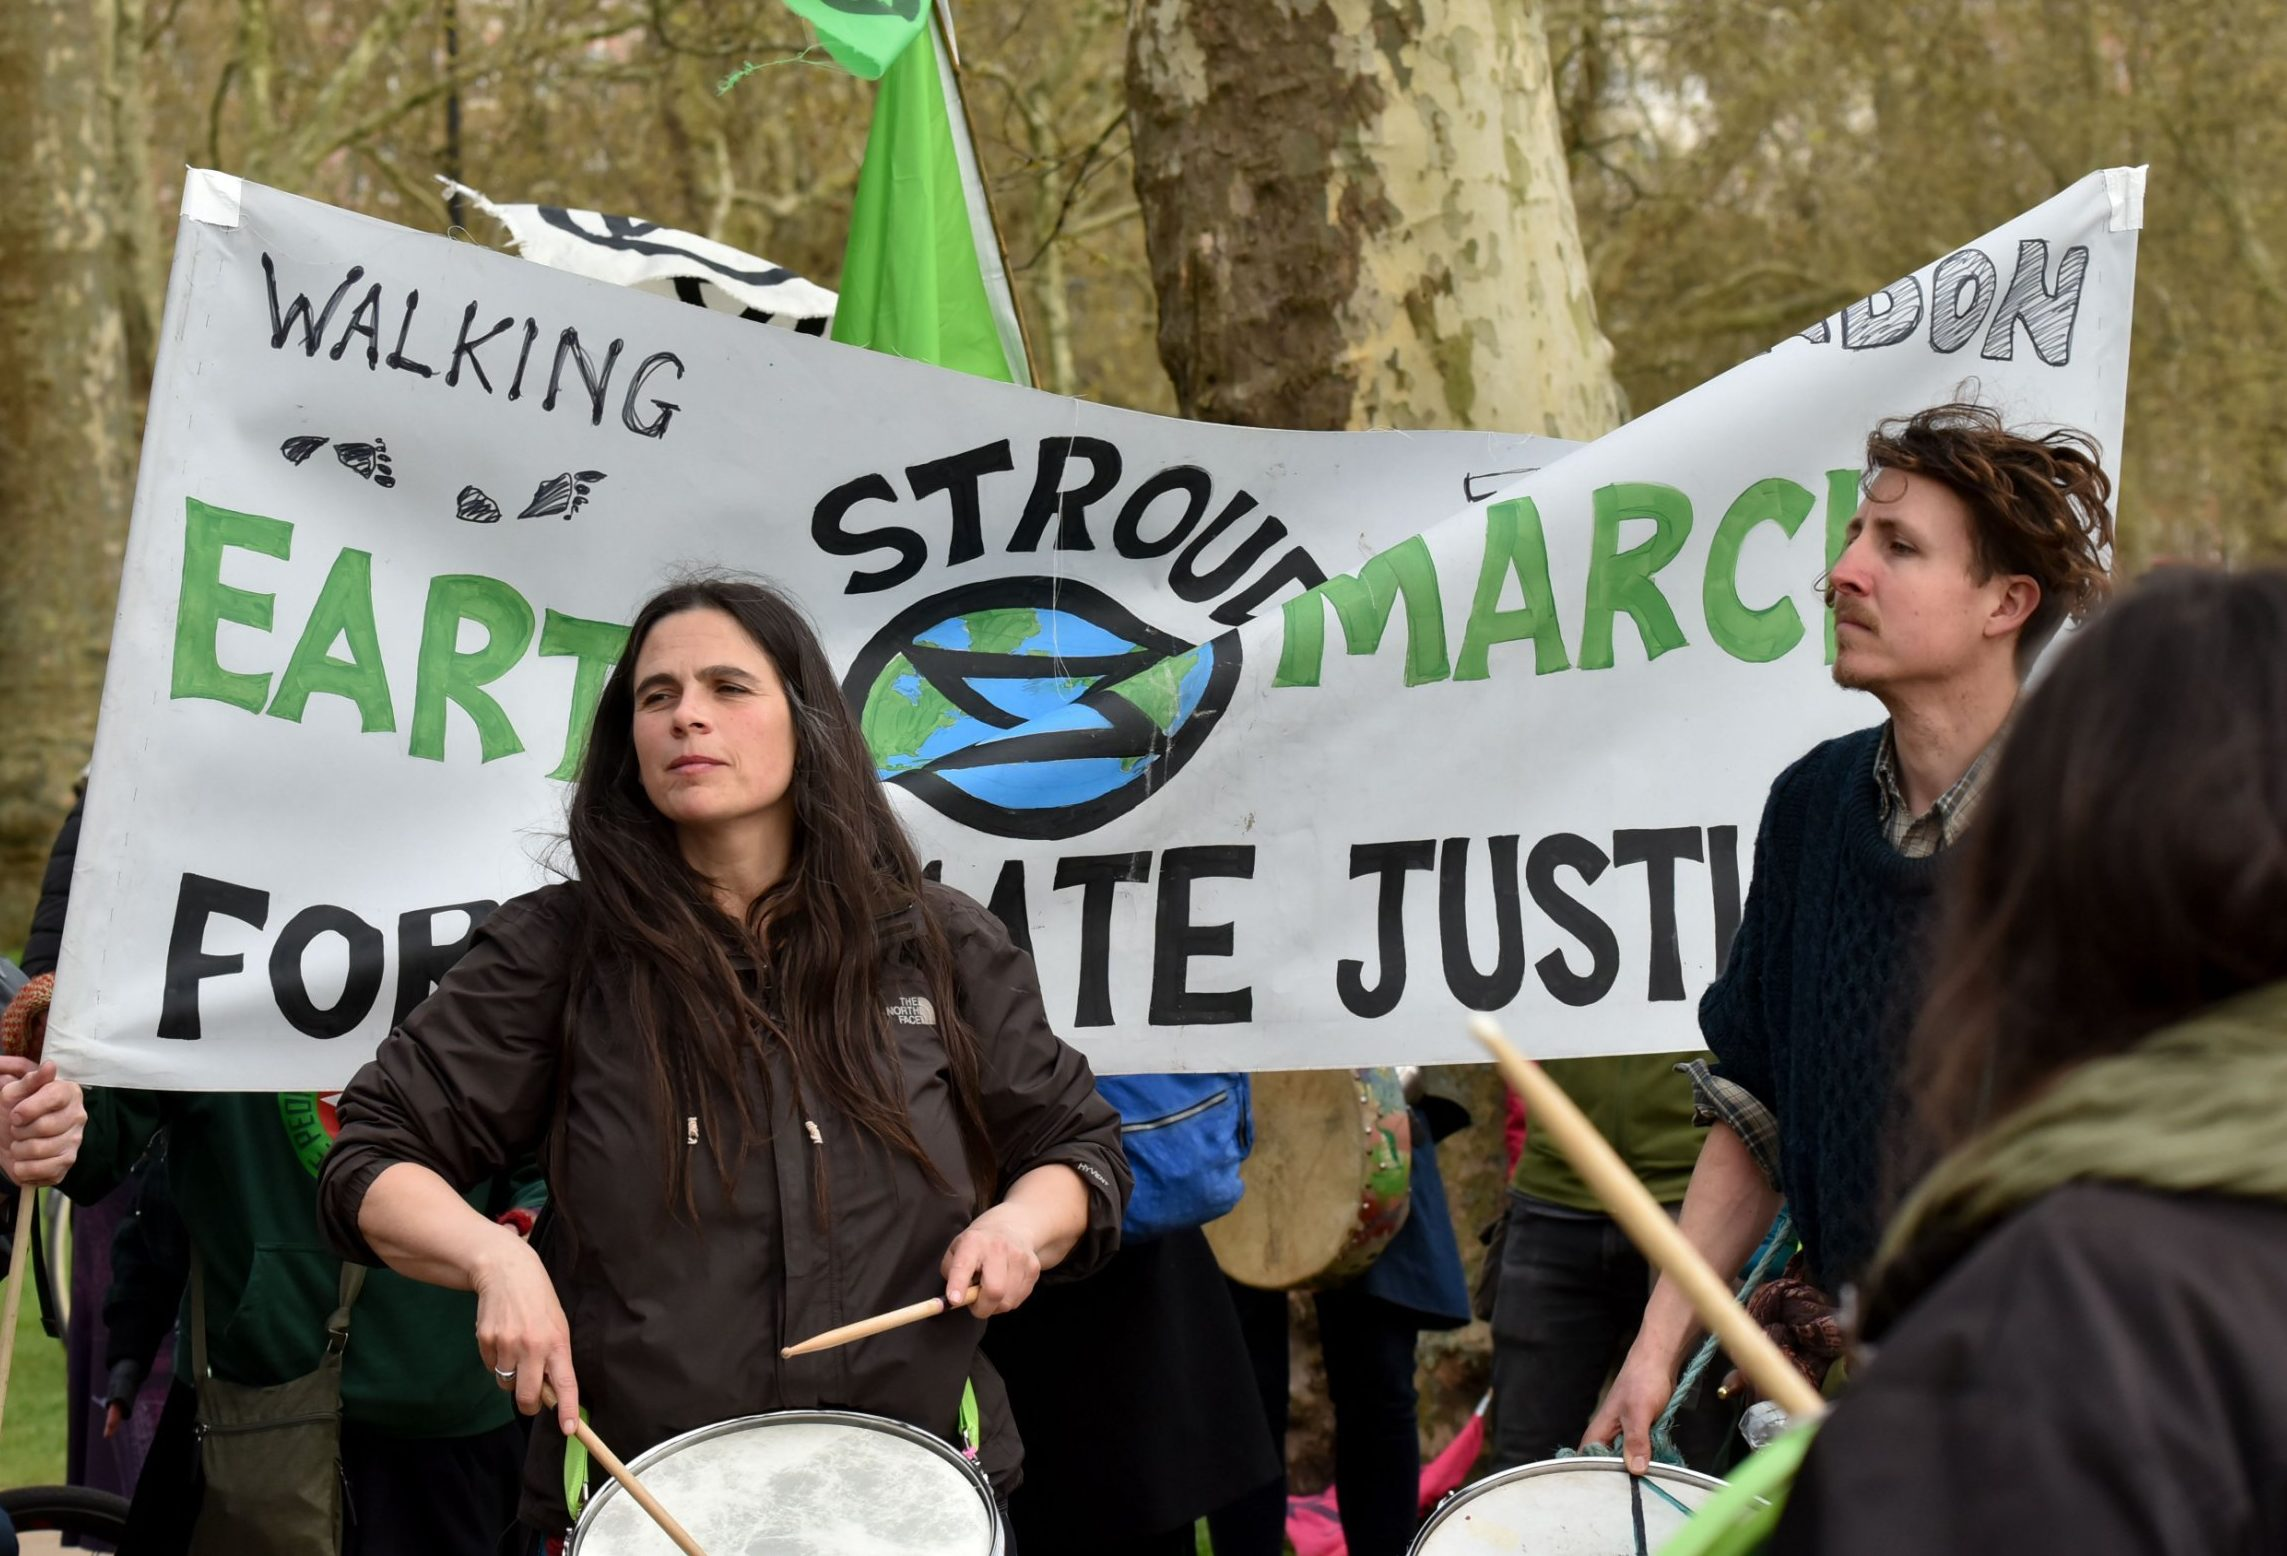 Mandatory Credit: Photo by Matthew Chattle/REX (10204045a) Extinction Rebellion and Earth March climate protesters in Hyde Park, London. Extinction Rebellion protest, London, UK. - 14 Apr 2019.